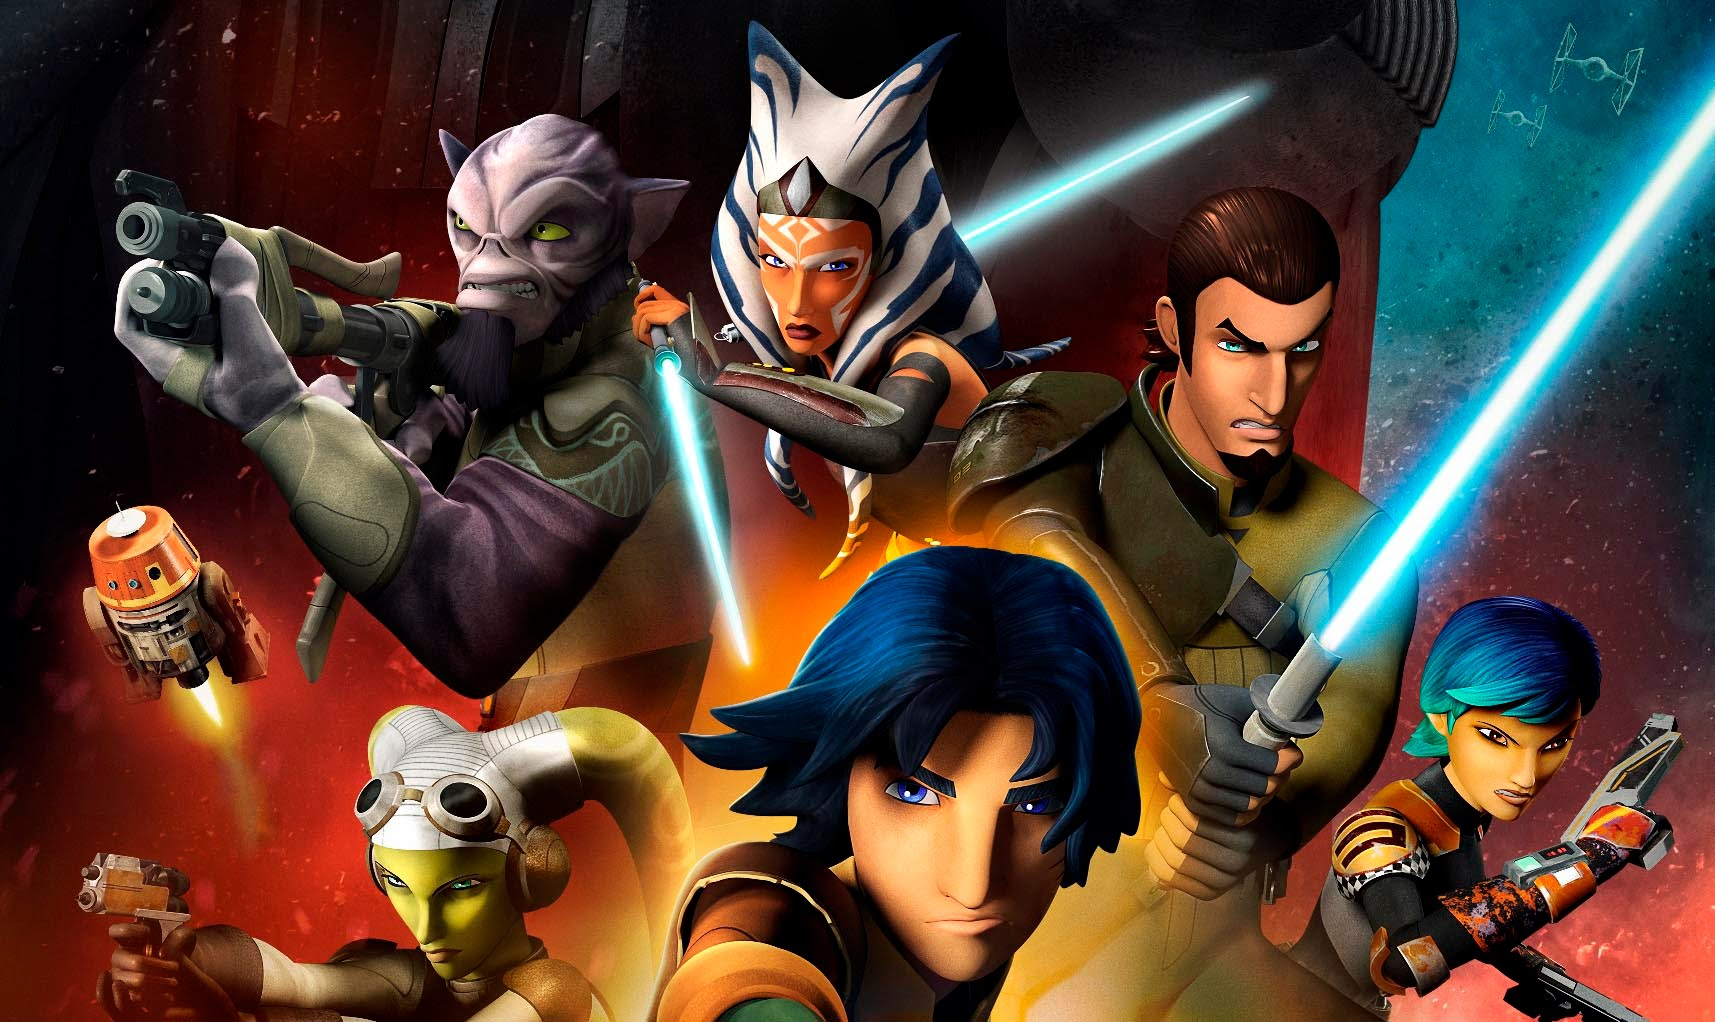 Star Wars Rebels is an animated television series set during the time frame between the films Star Wars Episode III Revenge of the Sith and Star Wars Episode IV A